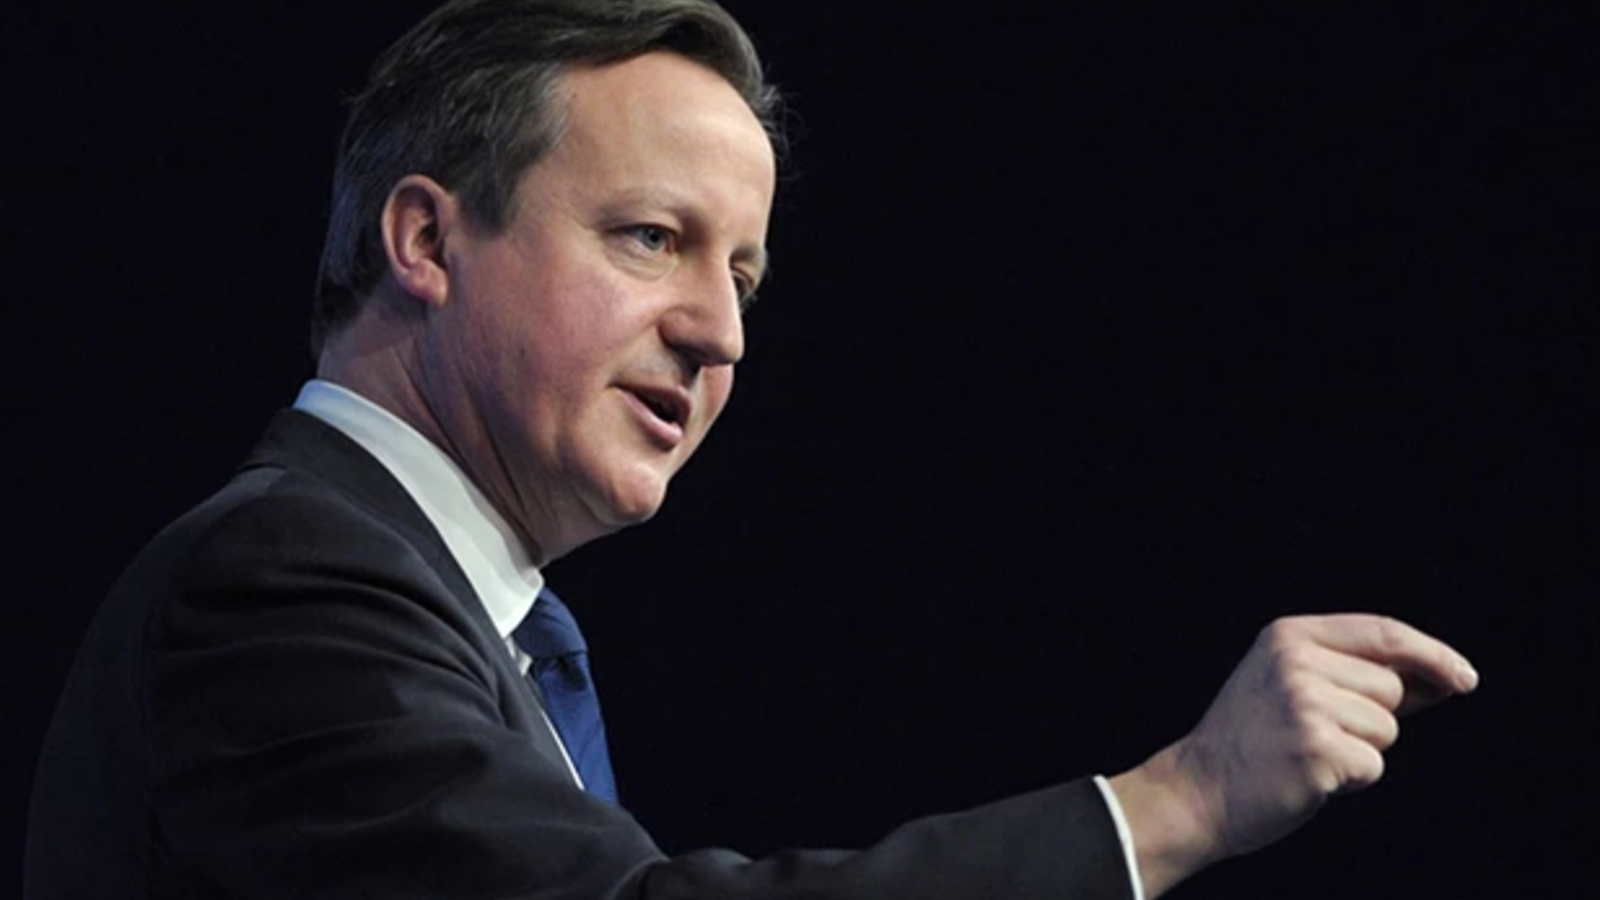 British Prime Minister David Cameron will speak before parliament to push airstrikes in Syria. (AFP/File)